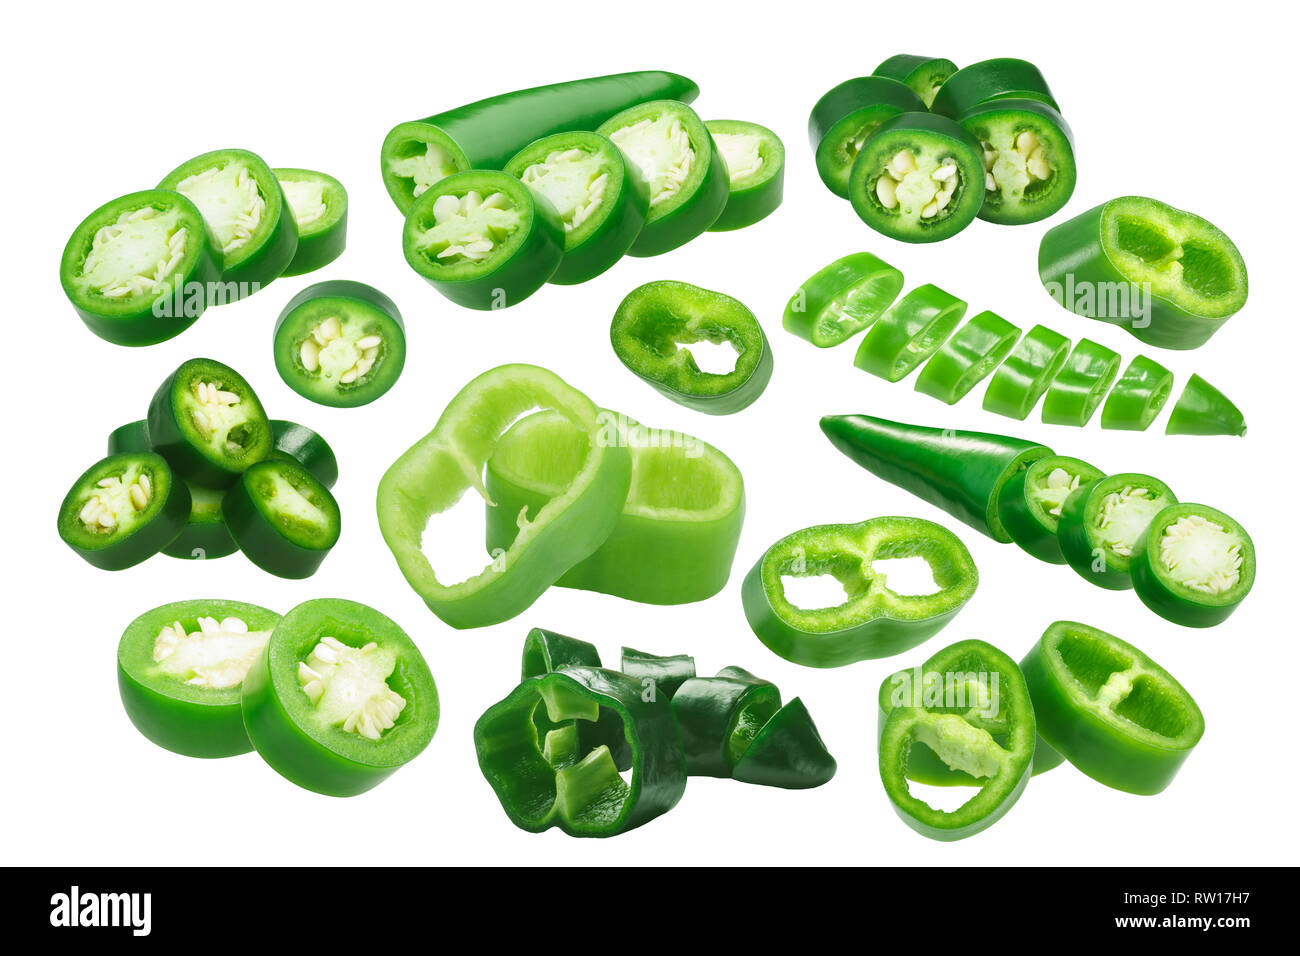 Sliced Green Chiles (chile peppers round slices), different